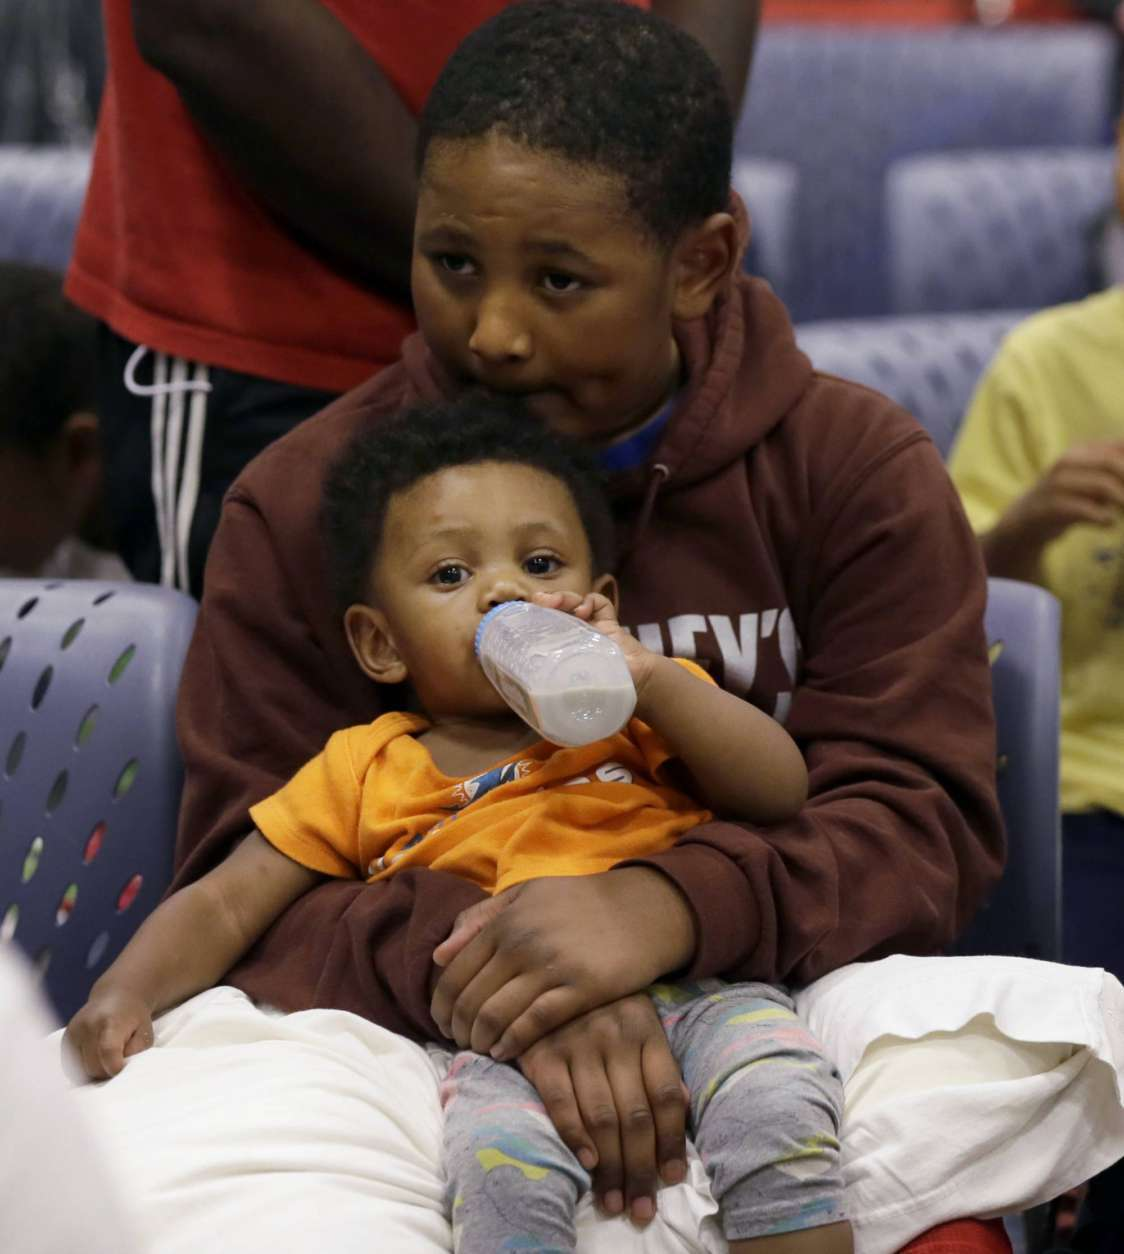 Evacuee Edward Jones, 11, holds his step-brother Mickel Duane Batts at the Lakewood Church in Houston, Tuesday, Aug. 29, 2017. Joel Olsten and his congregation have set up their church as a shelter for evacuees from the flooding by Tropical Storm Harvey. (AP Photo/LM Otero)